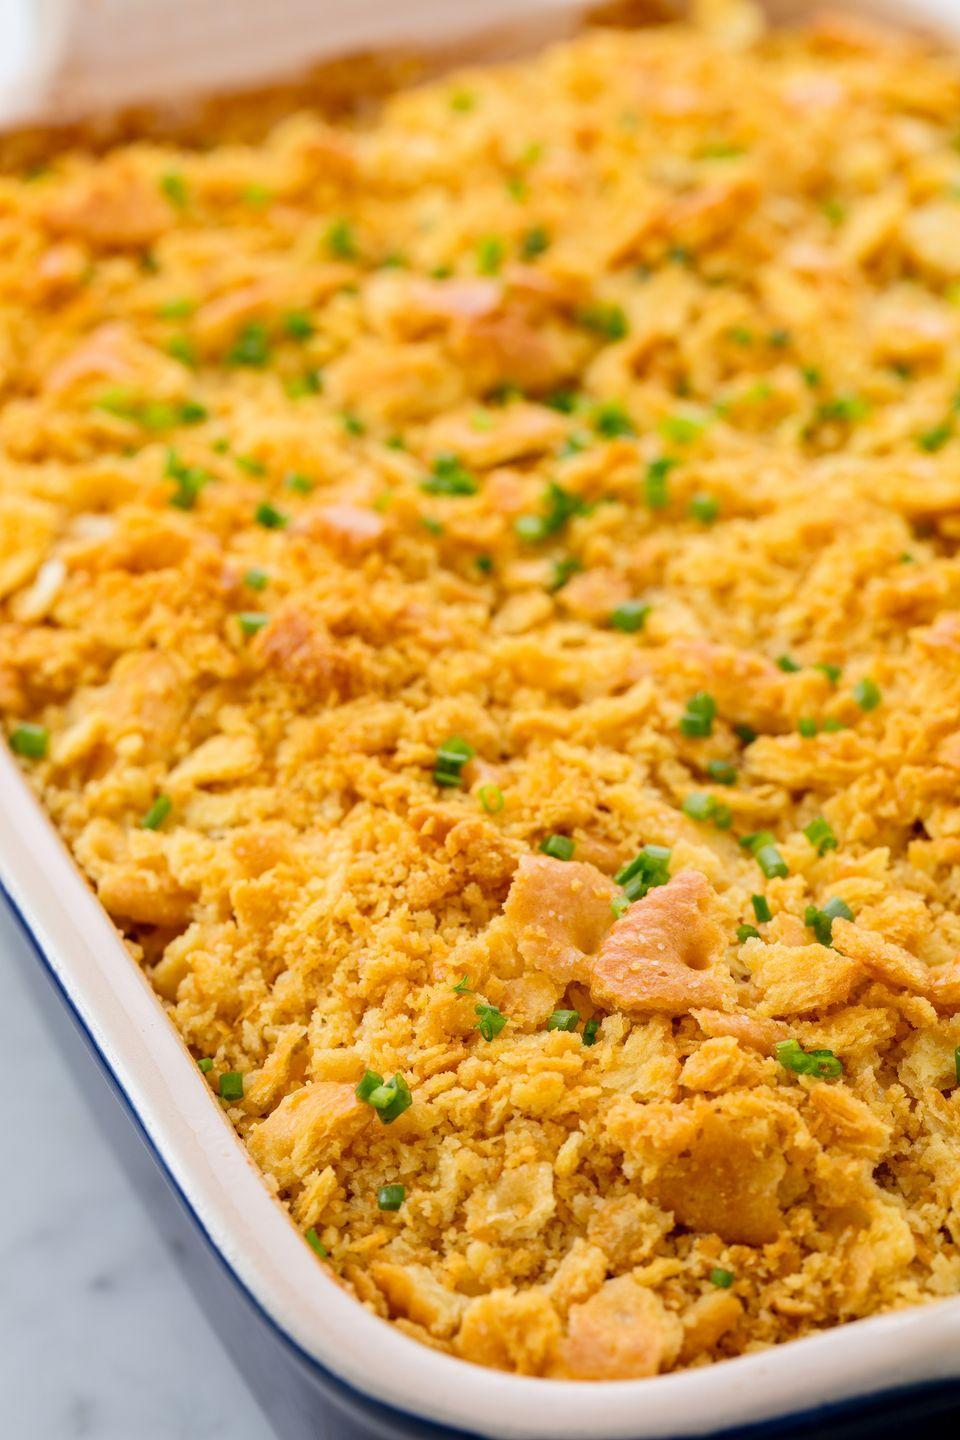 "<p>A layer of Ritz on top alwaysss wins.</p><p>Get the recipe from <a href=""https://www.delish.com/cooking/recipe-ideas/recipes/a55216/easy-yellow-squash-casserole-recipe/"" rel=""nofollow noopener"" target=""_blank"" data-ylk=""slk:Delish"" class=""link rapid-noclick-resp"">Delish</a>.</p>"